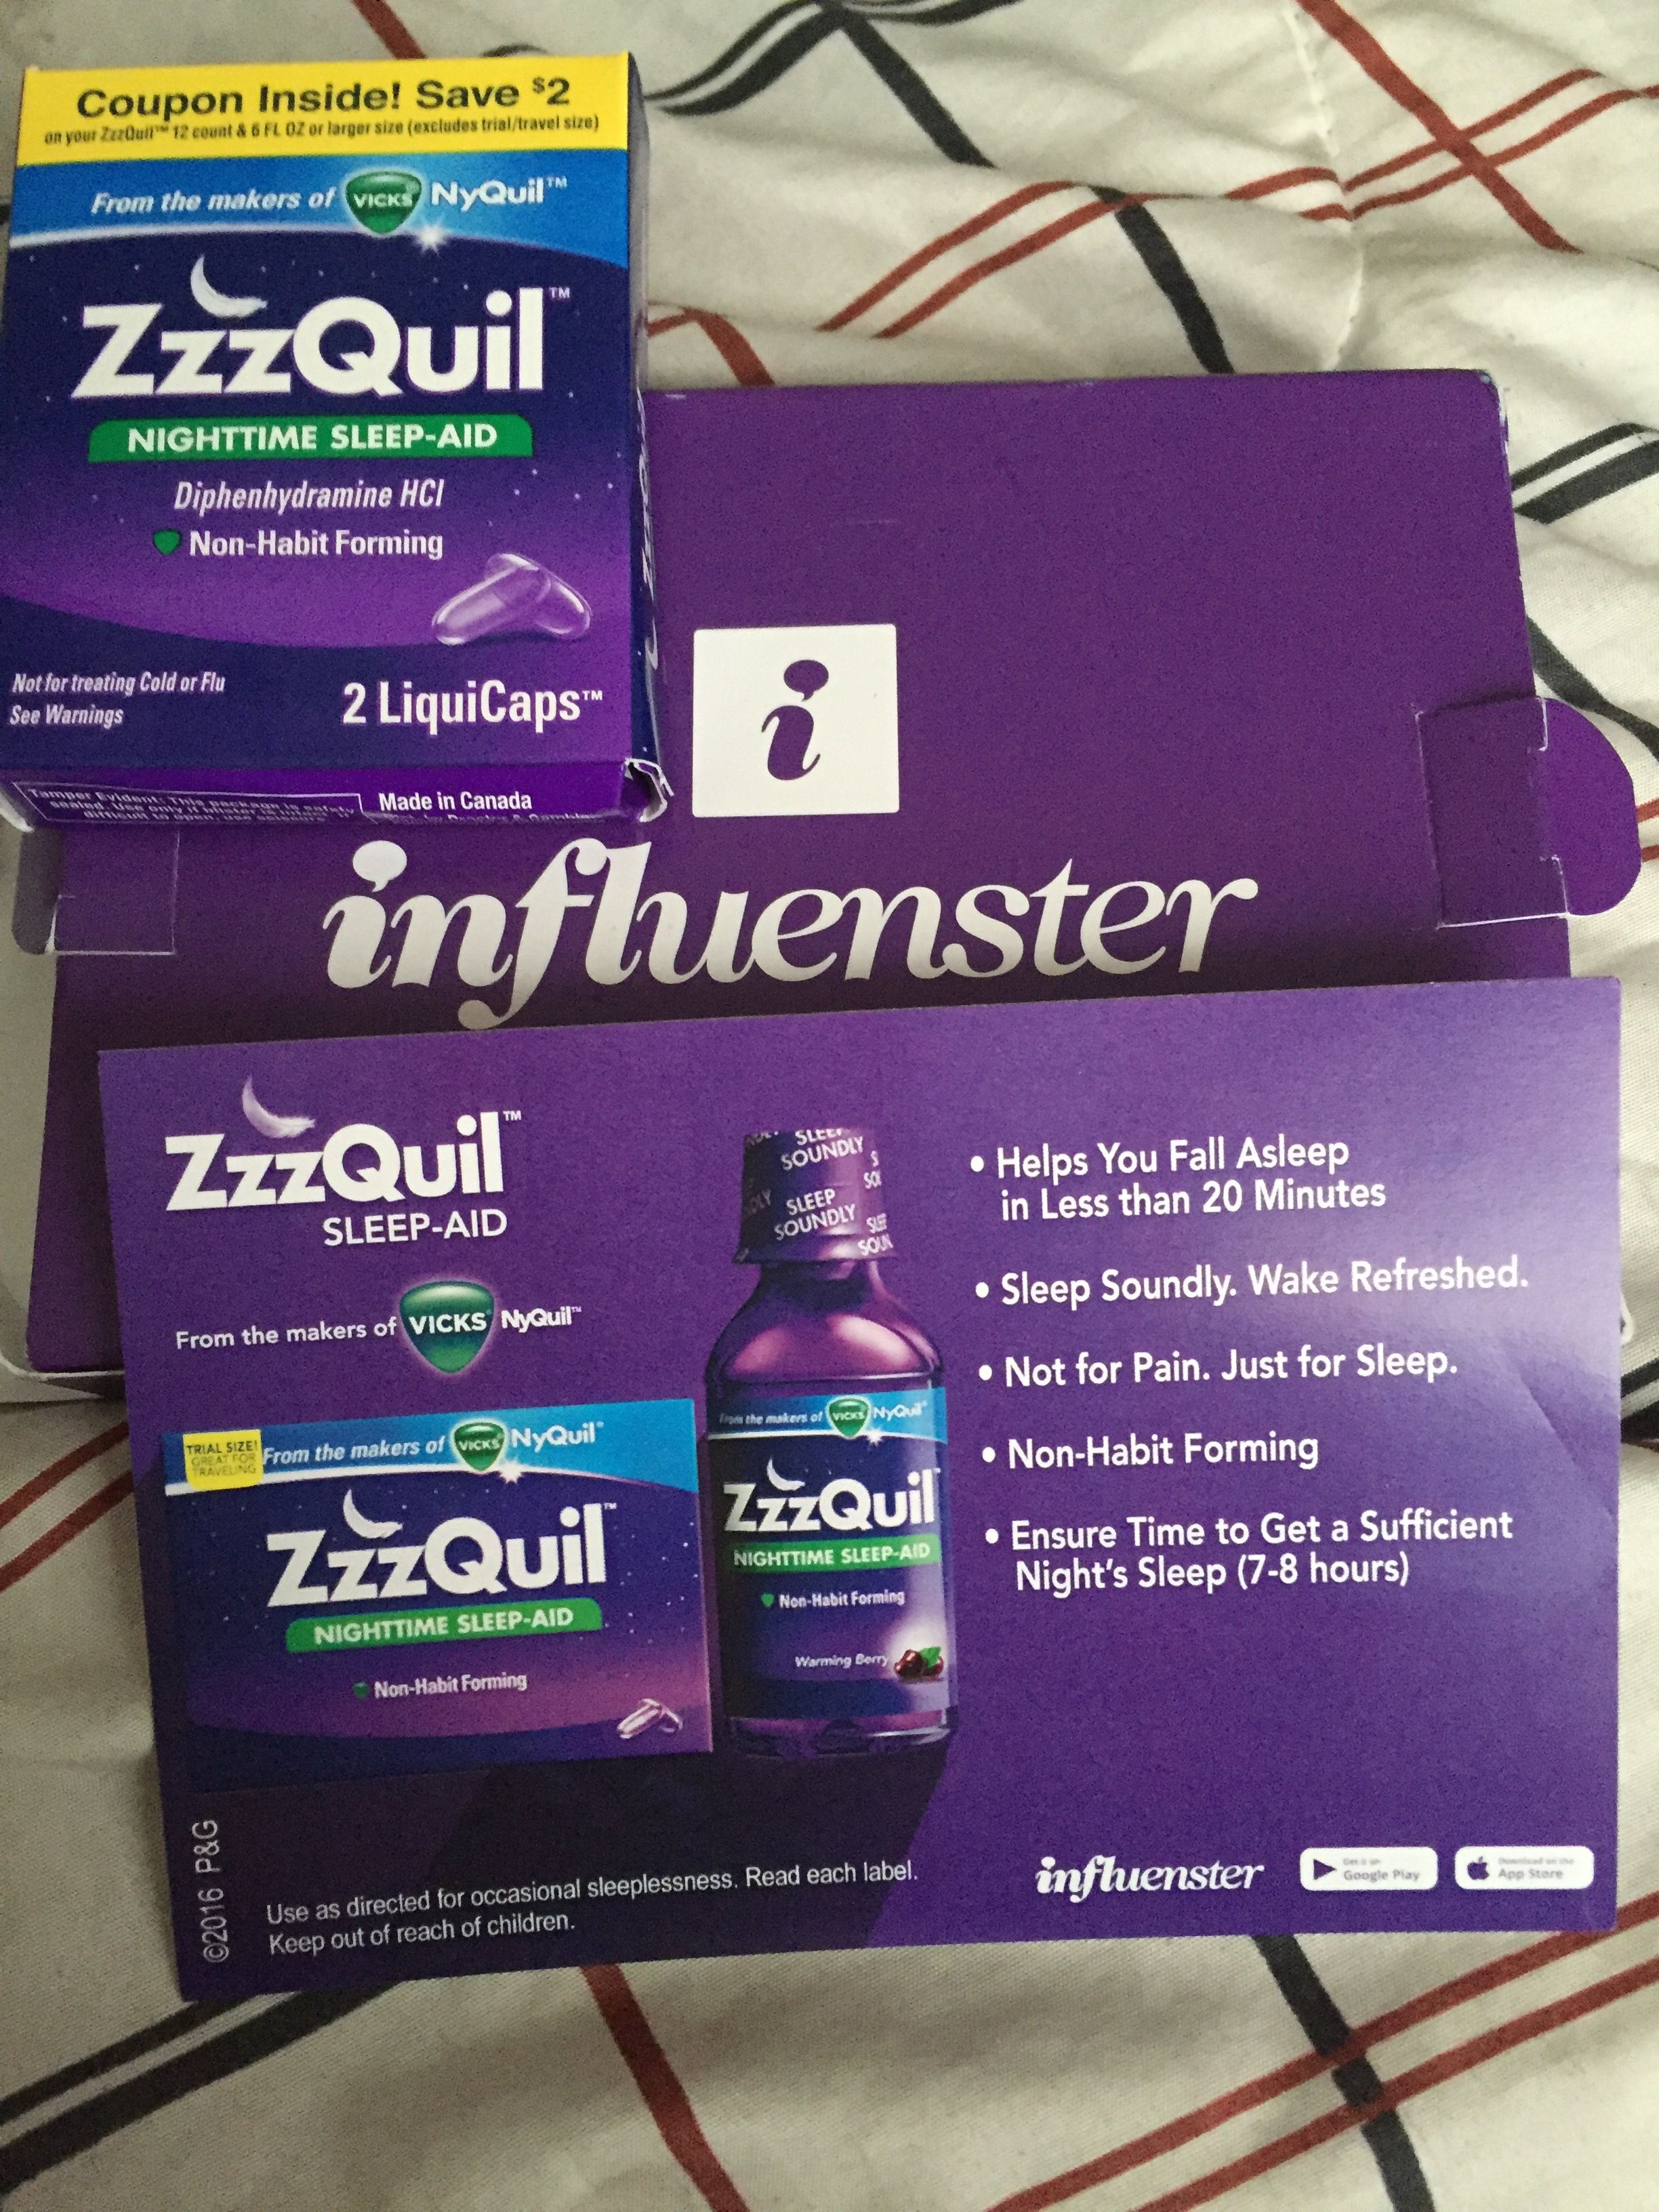 Can You Get Addicted To Nyquil Influenster Freeproduct Testing Zzzquil Goodnight Sleeplovers Tonight Cantwait Nighttime Sleep Aid How To Fall Asleep Sleep Lover